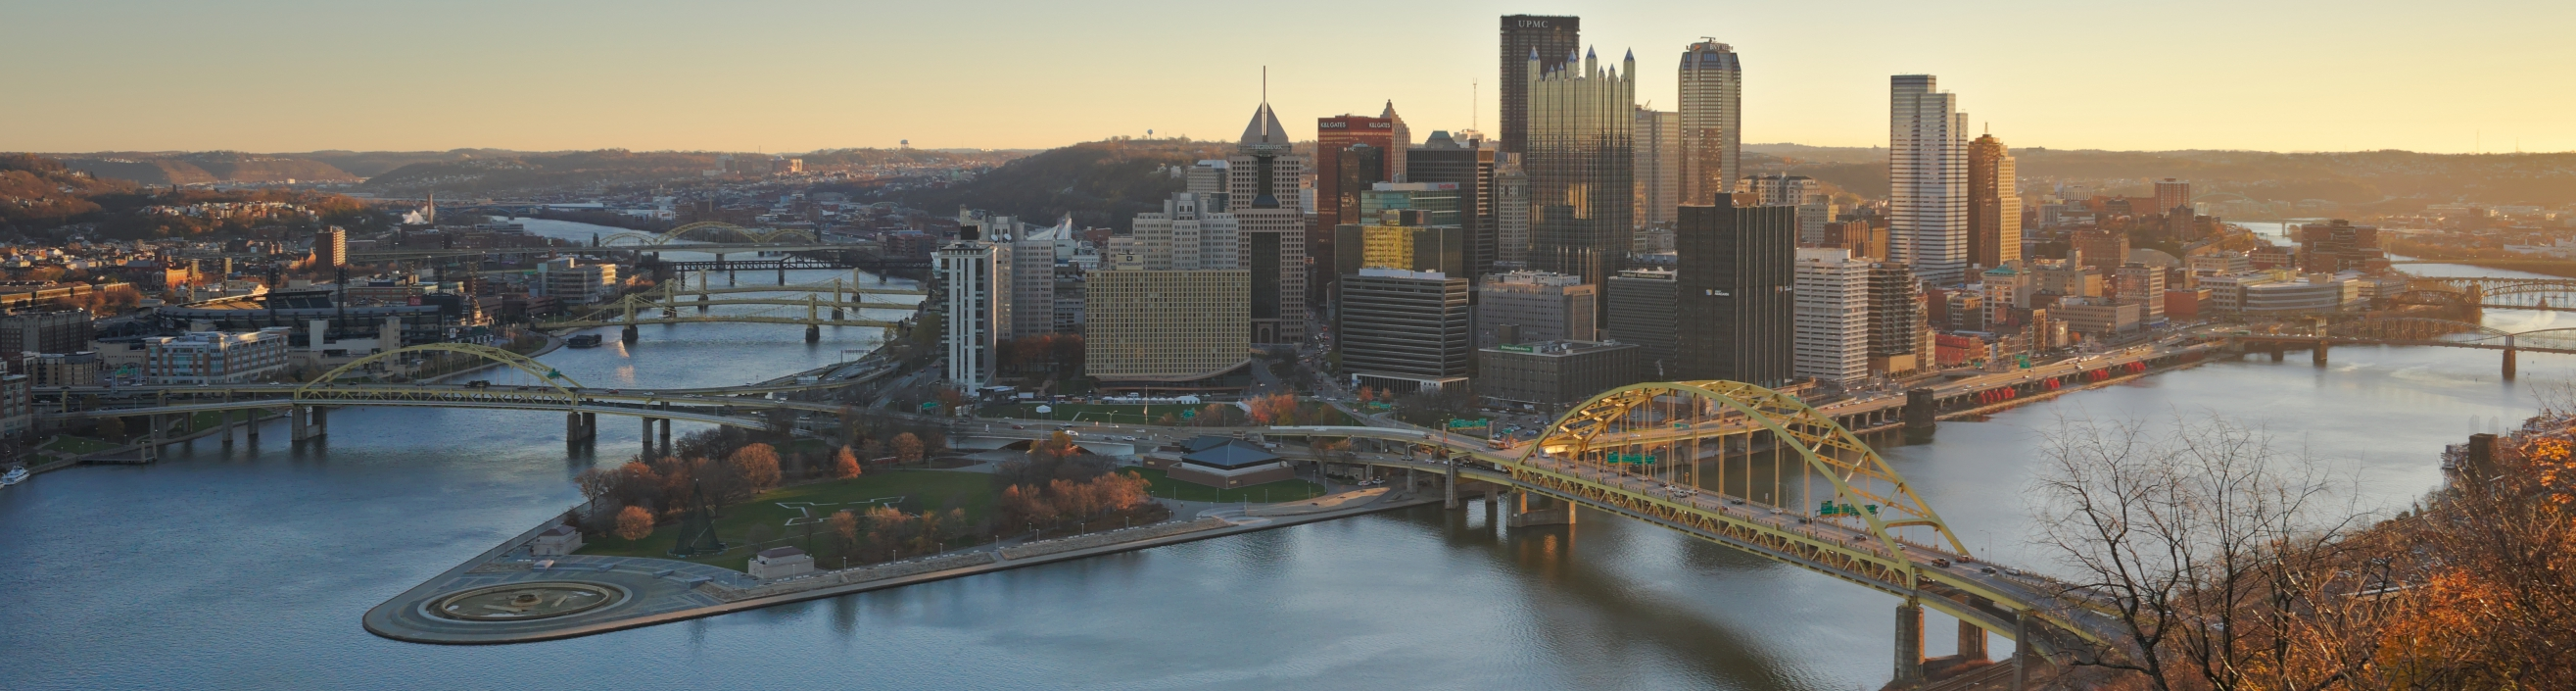 image - view of Downtown Pittsburgh from Duquesne Incline in the morning